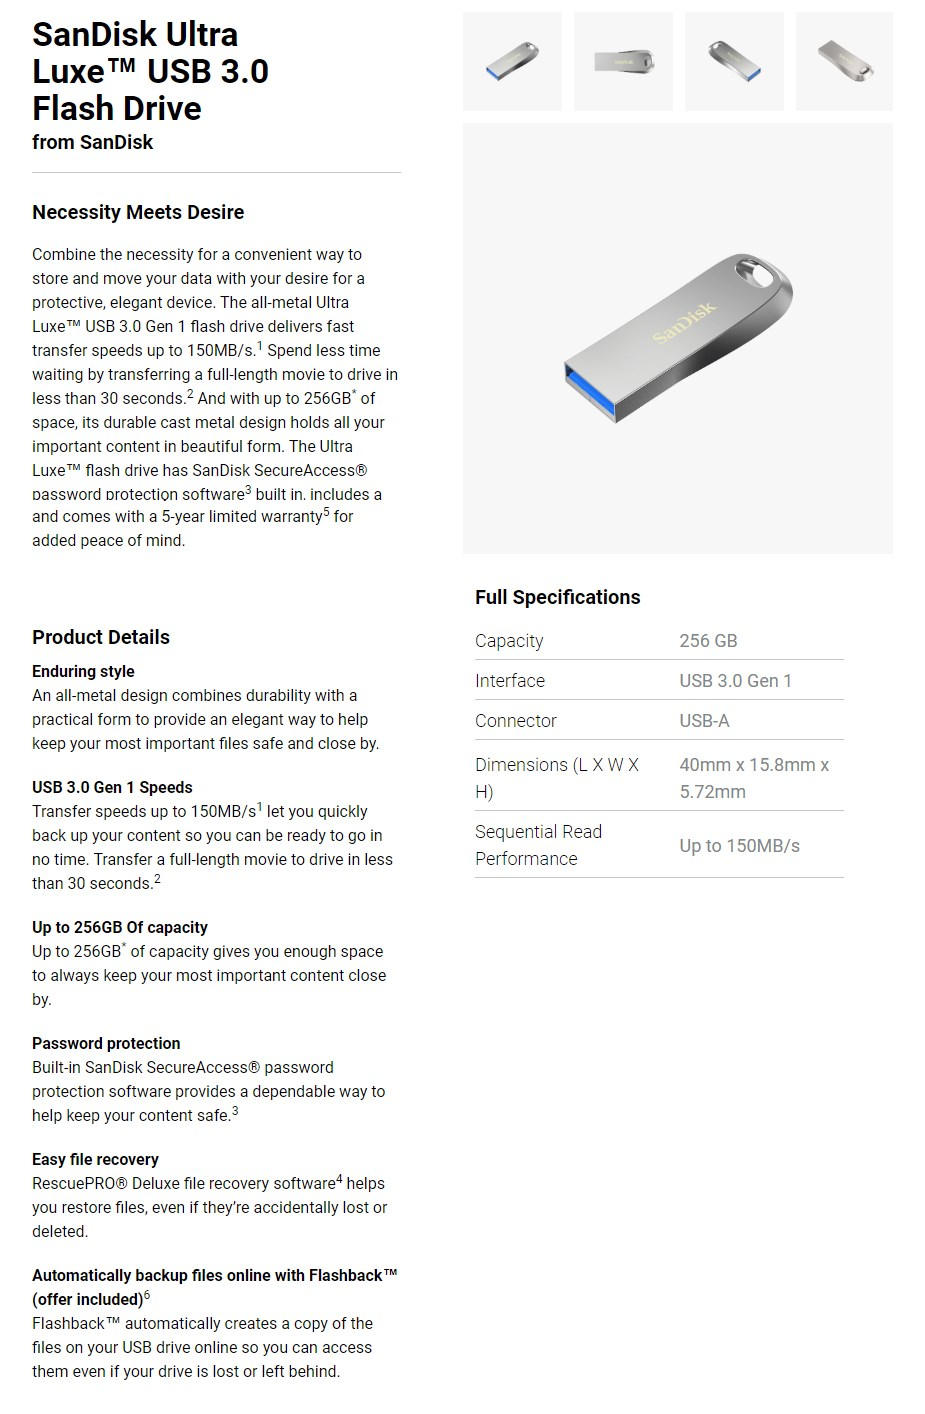 SanDisk 256GB Ultra Luxe USB 3.0 Flash Drive - Overview 1